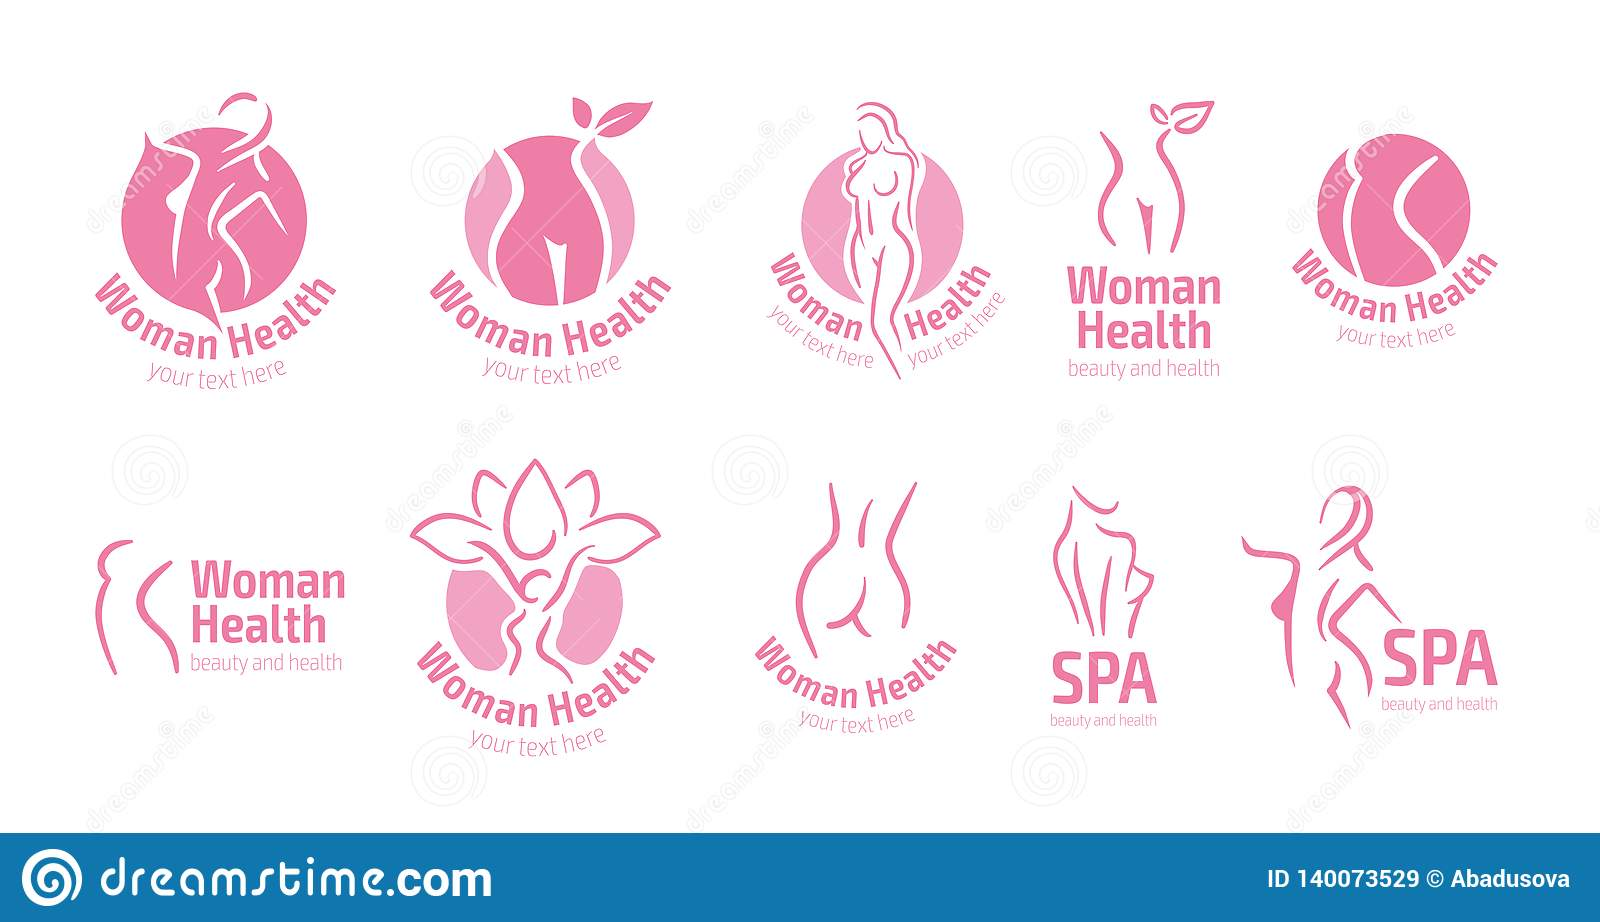 Women Fitness Logo Stock Illustrations 5 220 Women Fitness Logo Stock Illustrations Vectors Clipart Dreamstime How logoground works new logos logos by category logo collections (top 20 lists) the top 100 logos community page (designers, sales etc.) fit woman. https www dreamstime com women fitness logo icon woman silhouette diet logo spa salon logo women fitness logo icon sports health spa yoga beauty vector image140073529